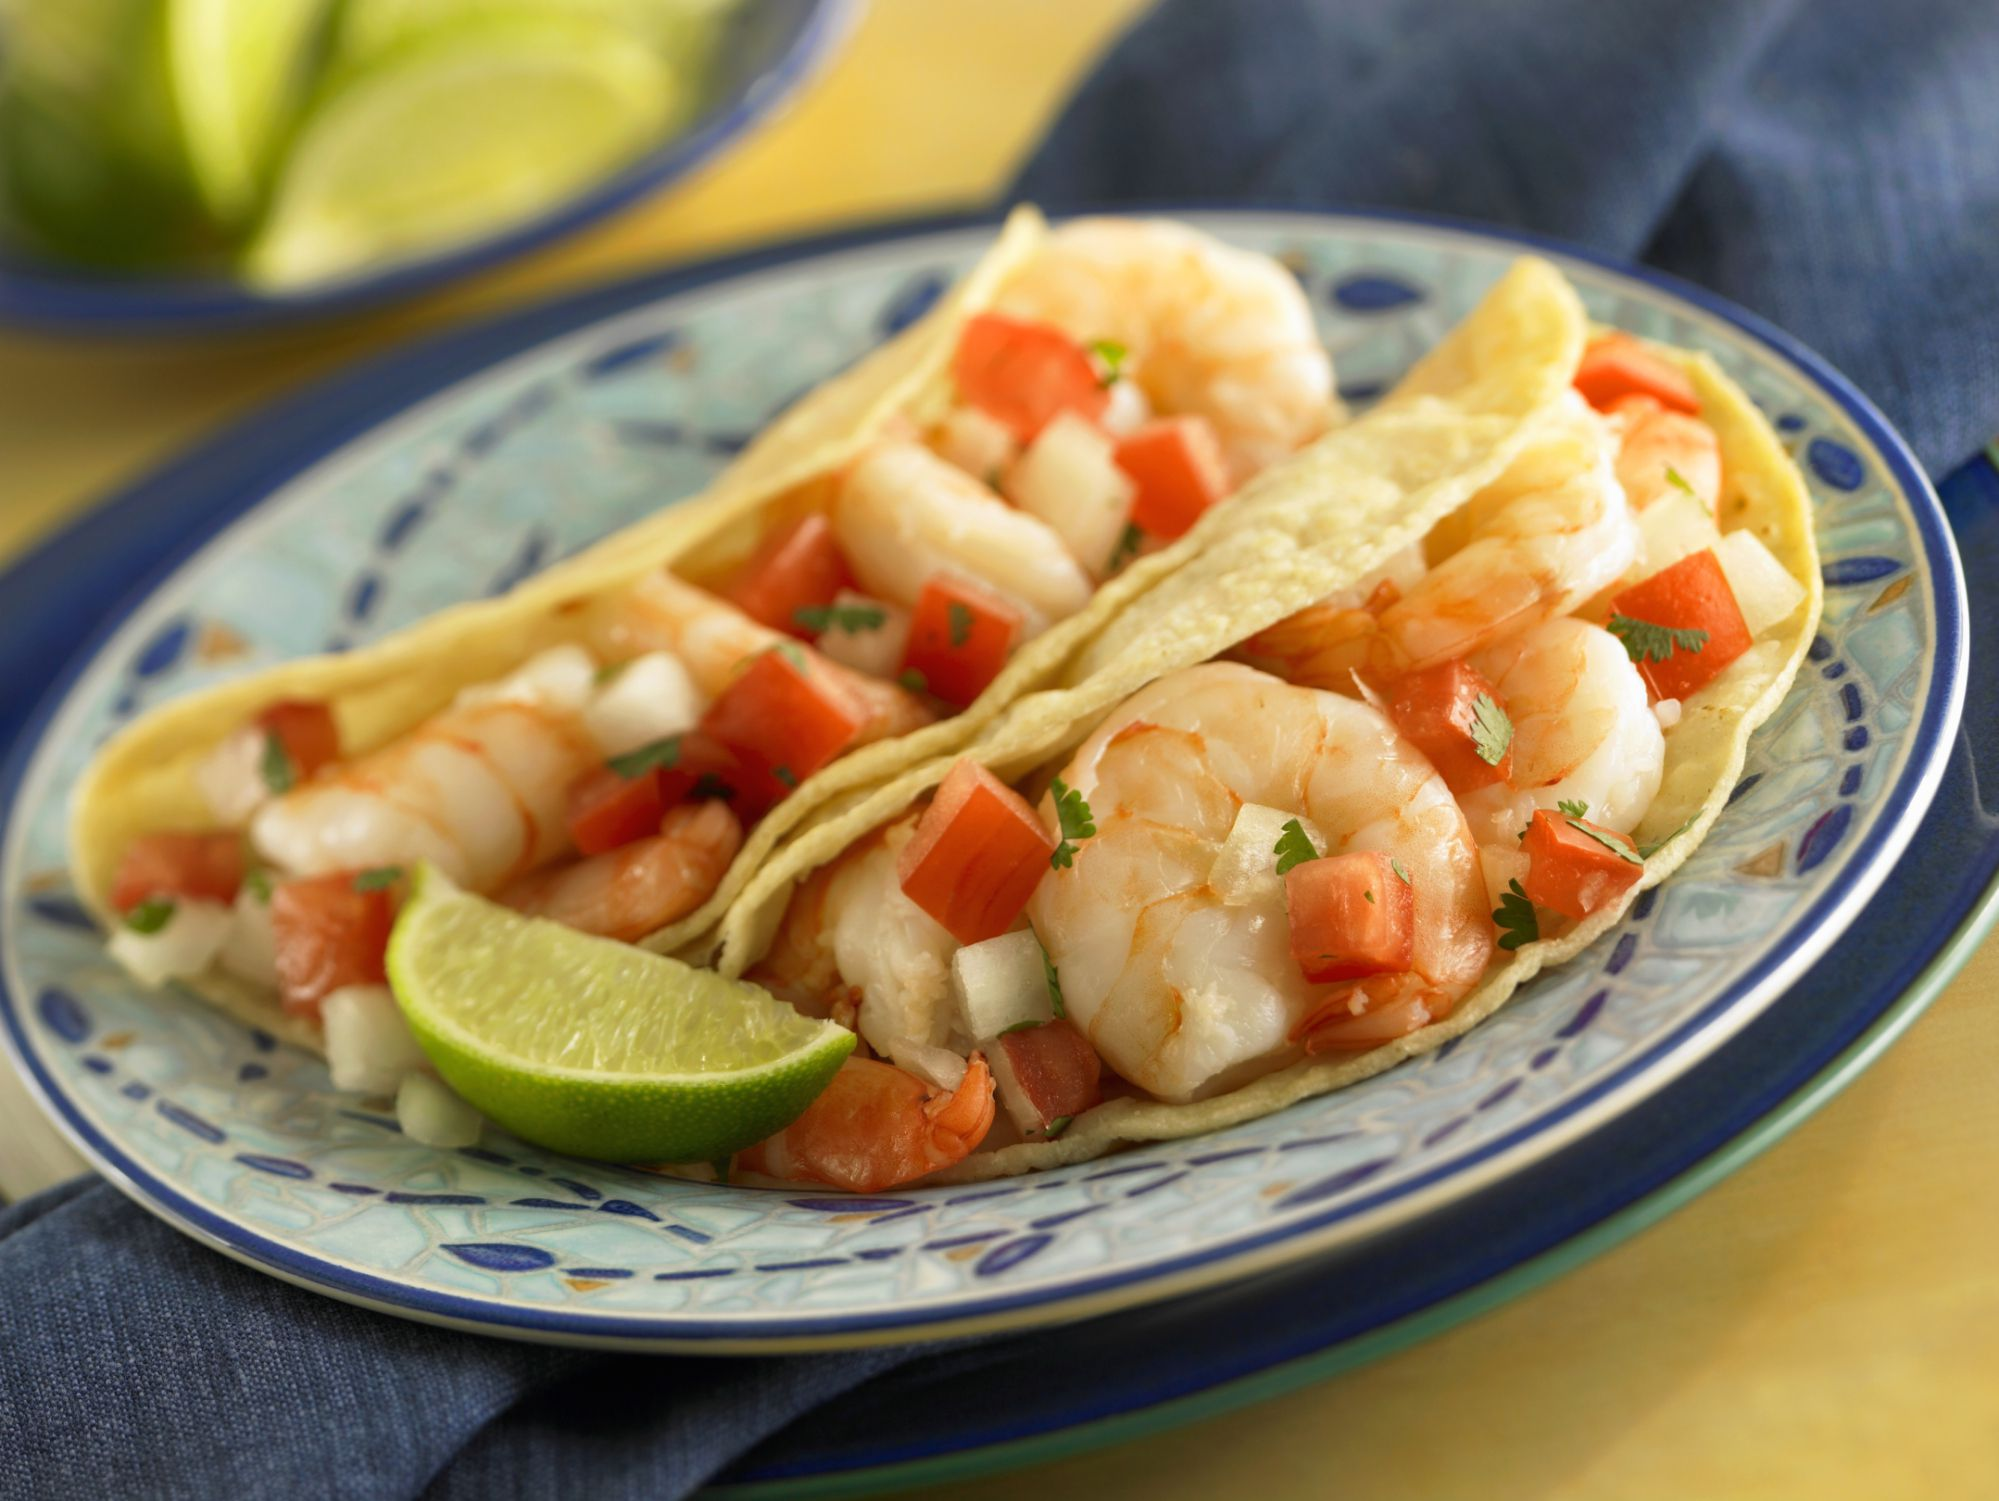 900 Calorie Dinner mexican food nutrition: menu choices and calories